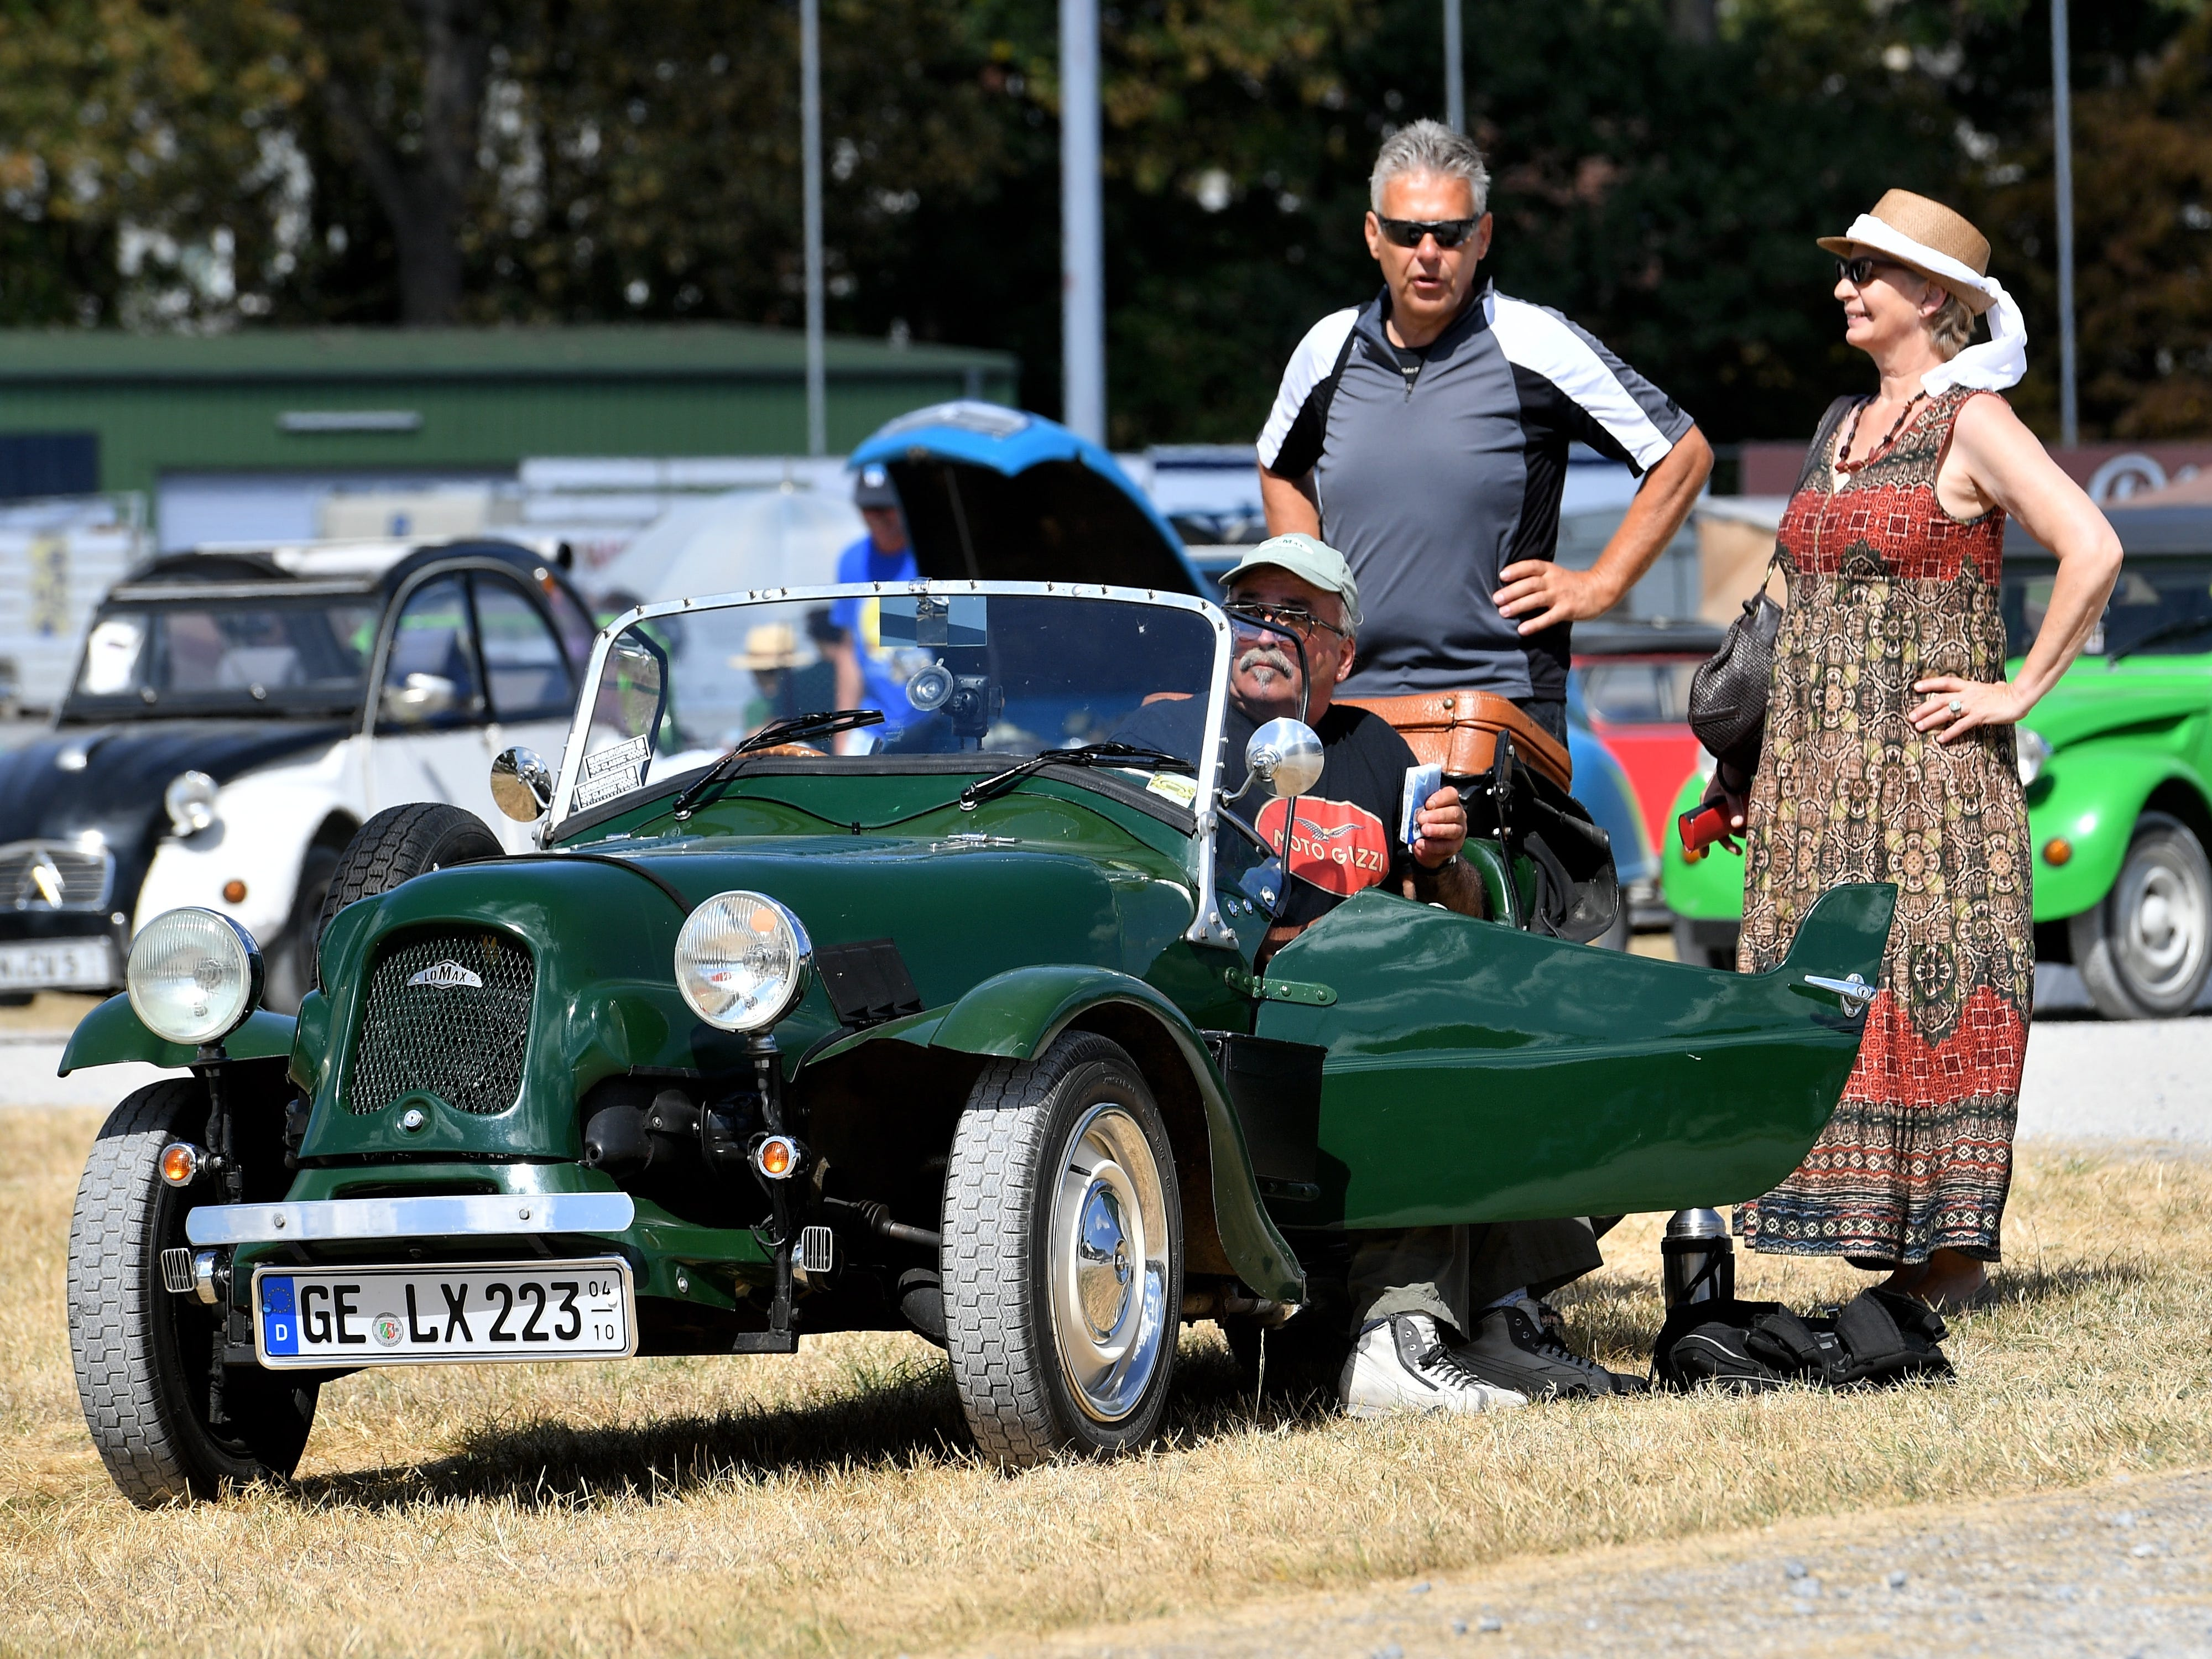 epa06928533 People look on a british Lomax car, based on a Citroen 2CV, at the 8th International Germany Citroen 2CV meeting at the trotting track in Dinslaken, Germany, 05 August 2018. More than 1,000 fans of the French cult car from many countries, gazed numerous maintained examples of the cult 'duck' in all colours and versions.  EPA-EFE/SASCHA STEINBACH